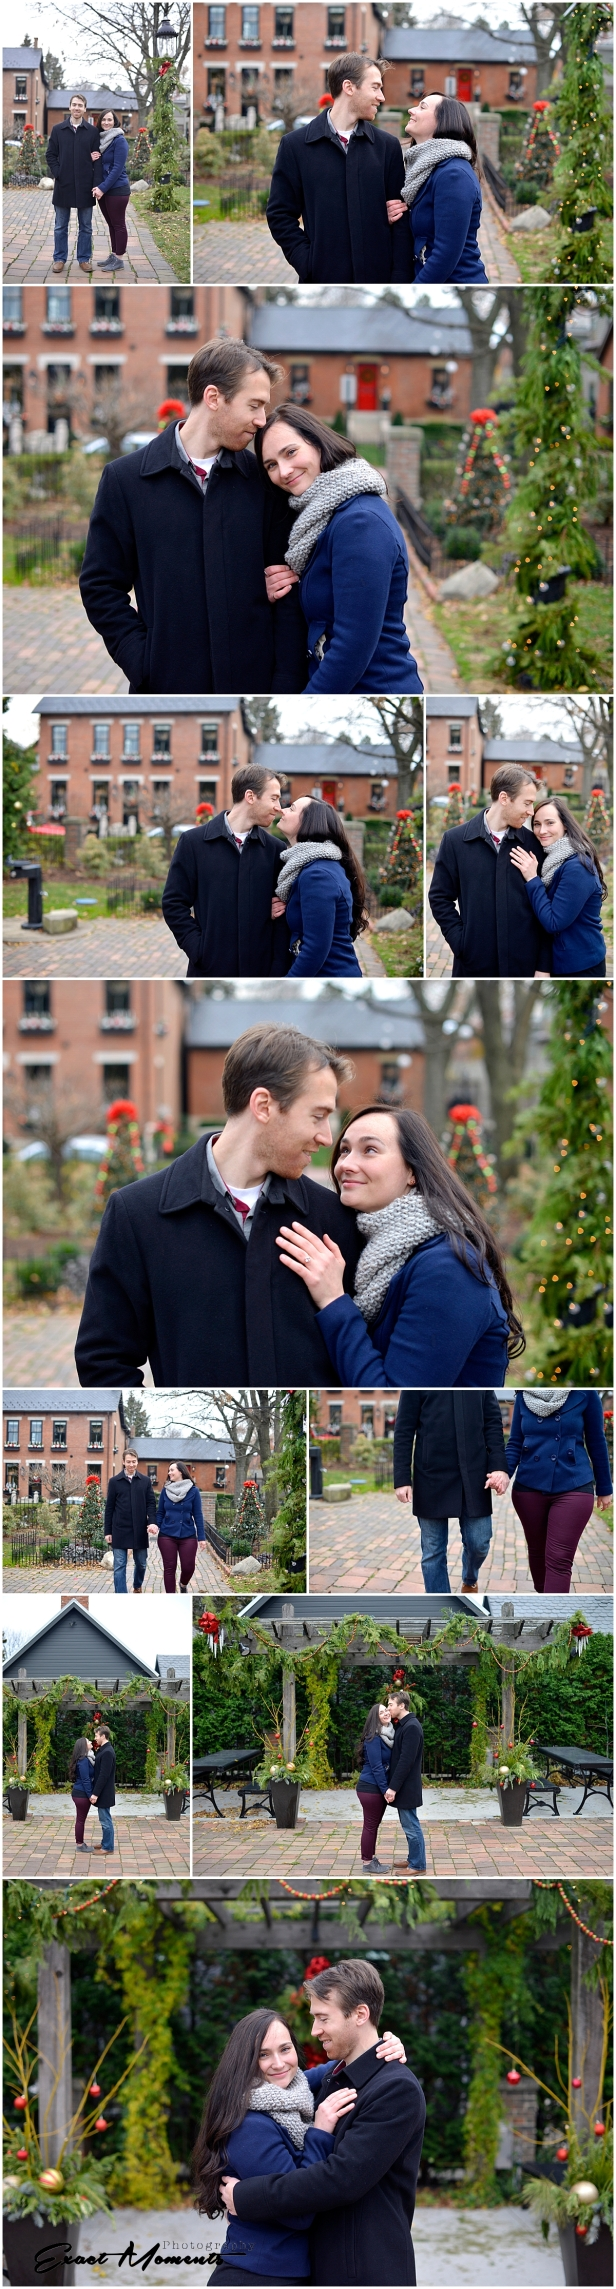 german-village-engagement-session-columbus-ohio